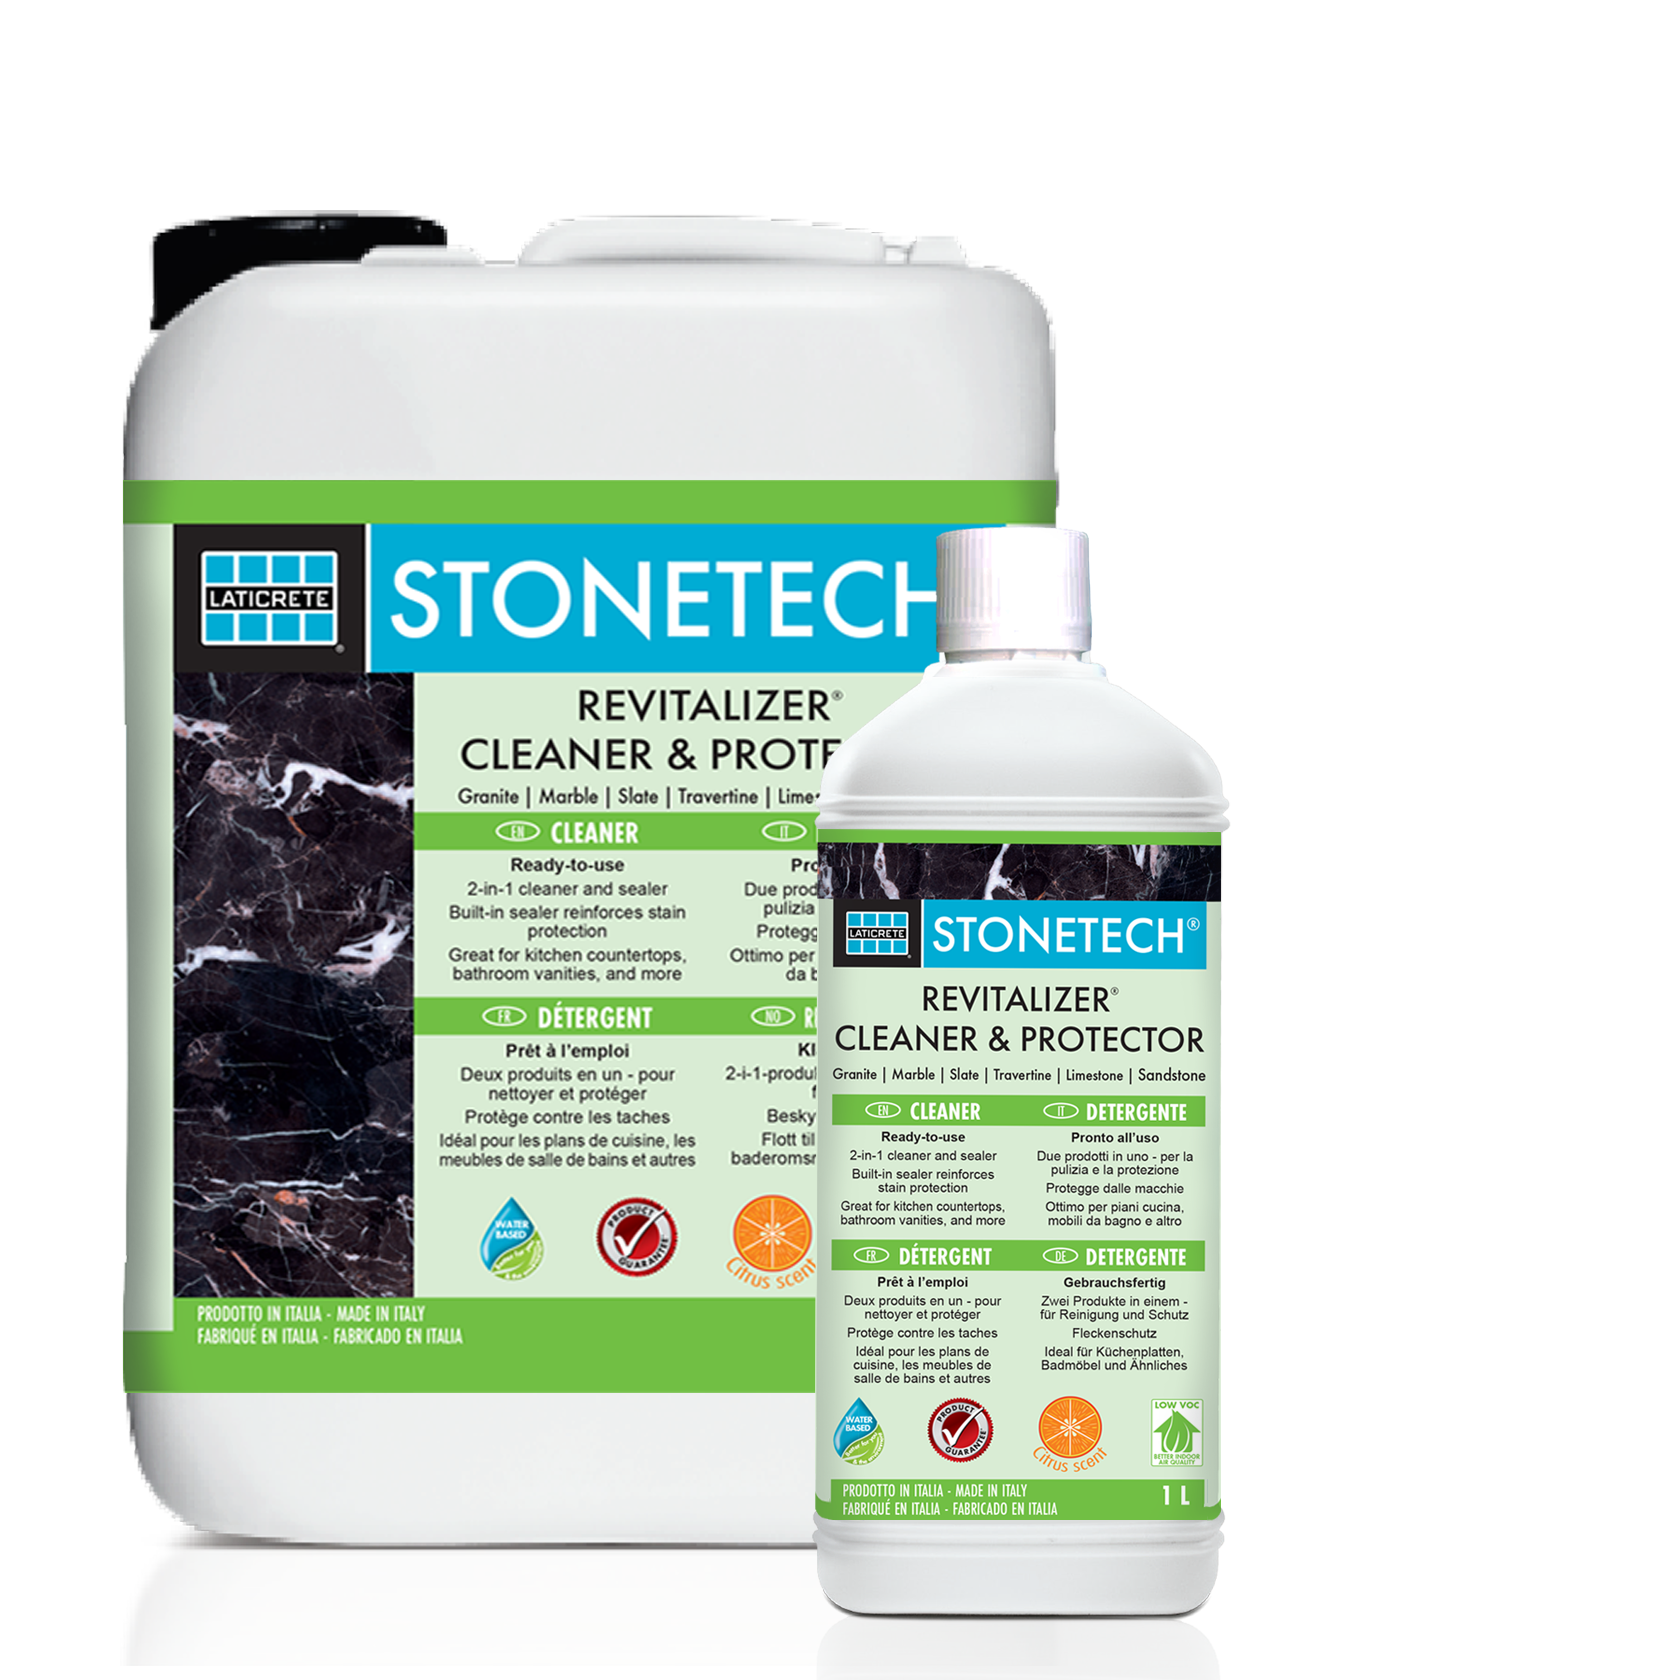 STONETECH Revitalizer Grouping (1)